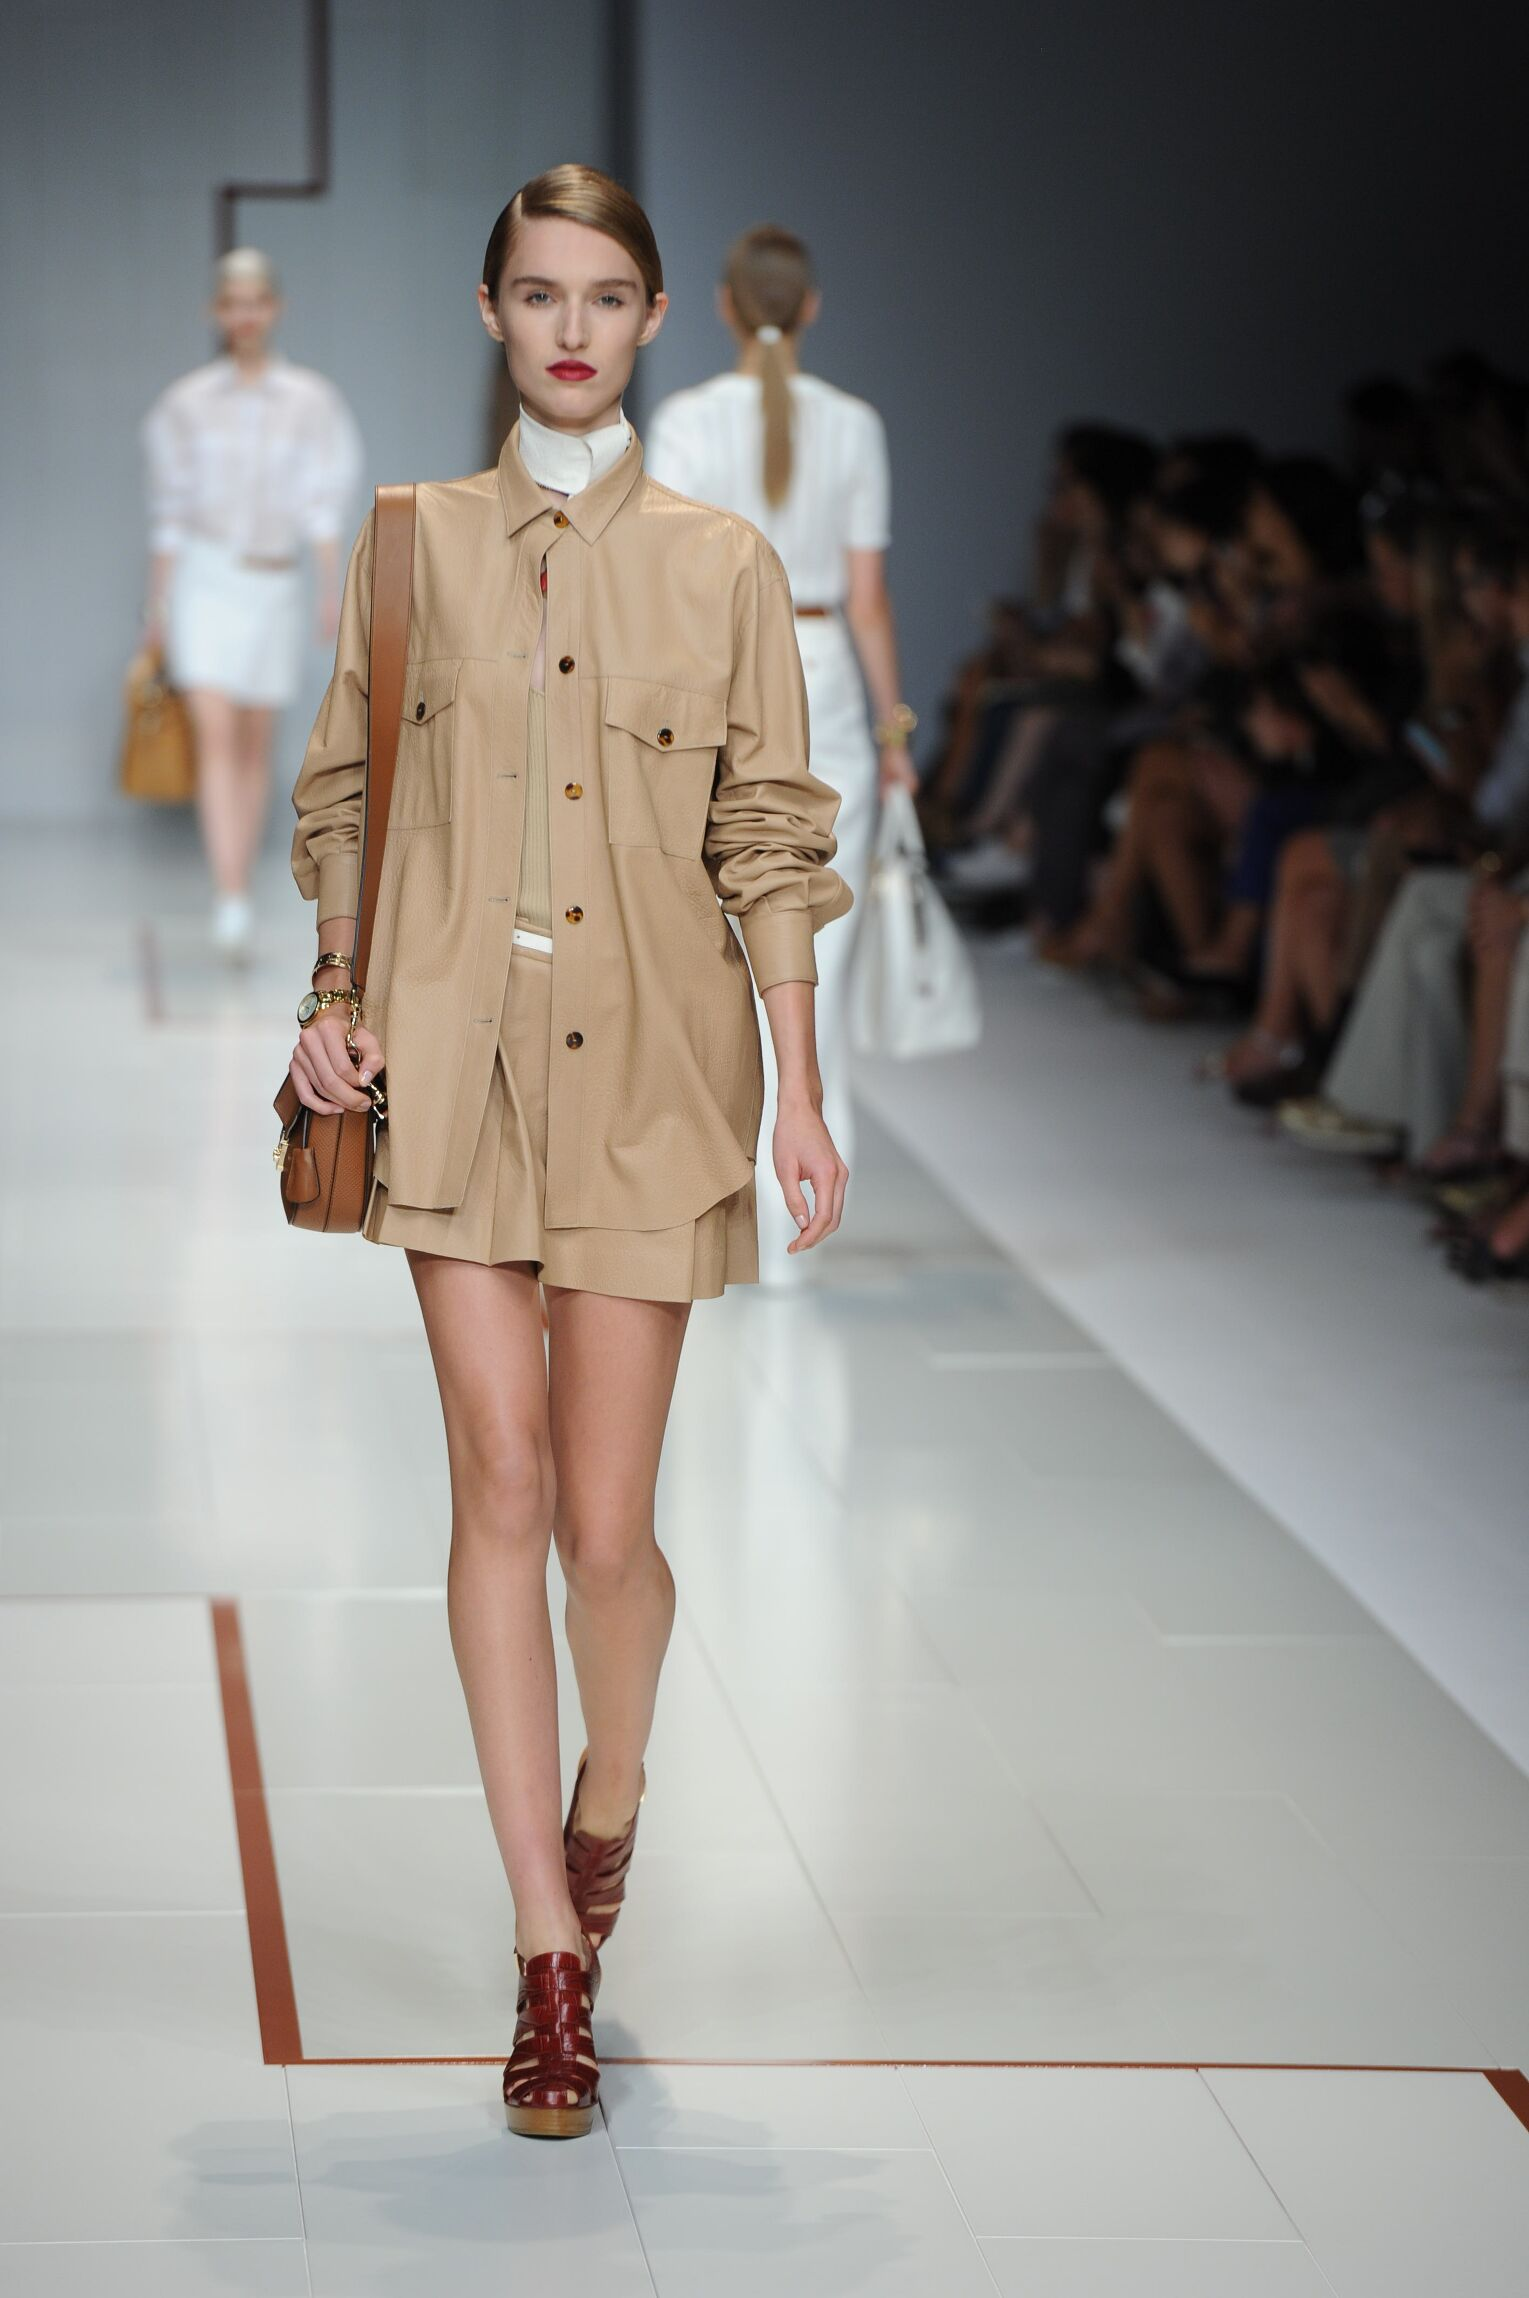 Spring Summer 2015 Fashion Model Trussardi